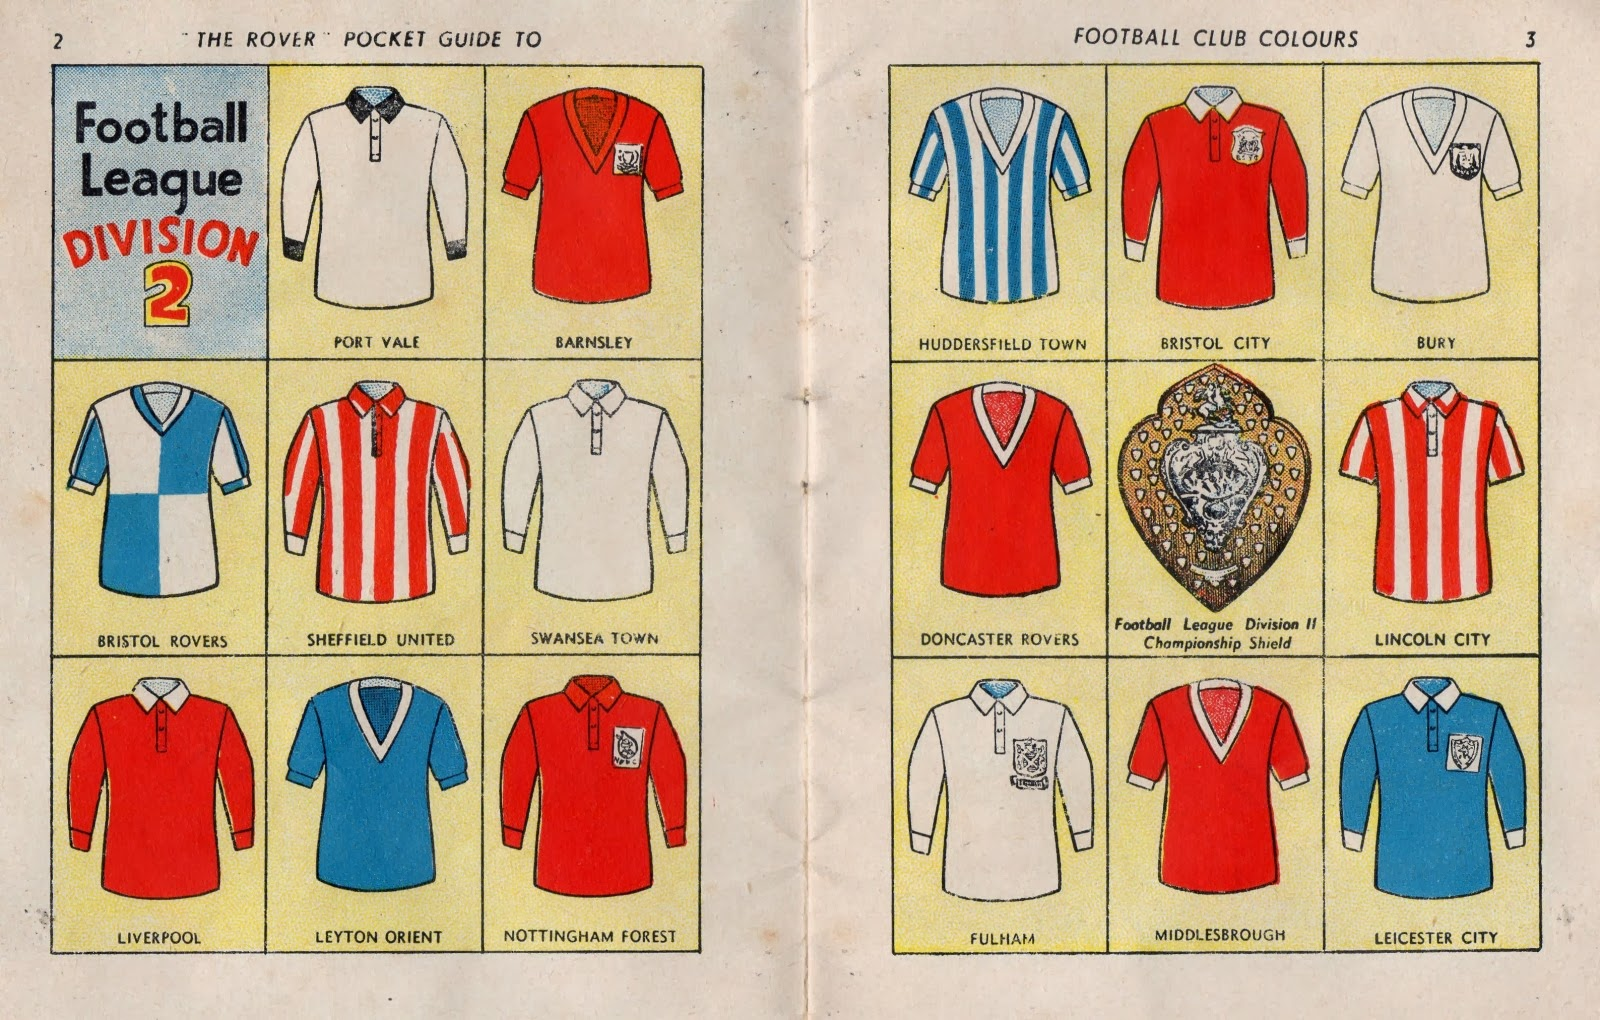 D.C. Thomson / The Rover - THO-241 The Rover Pocket Guide to Football Club